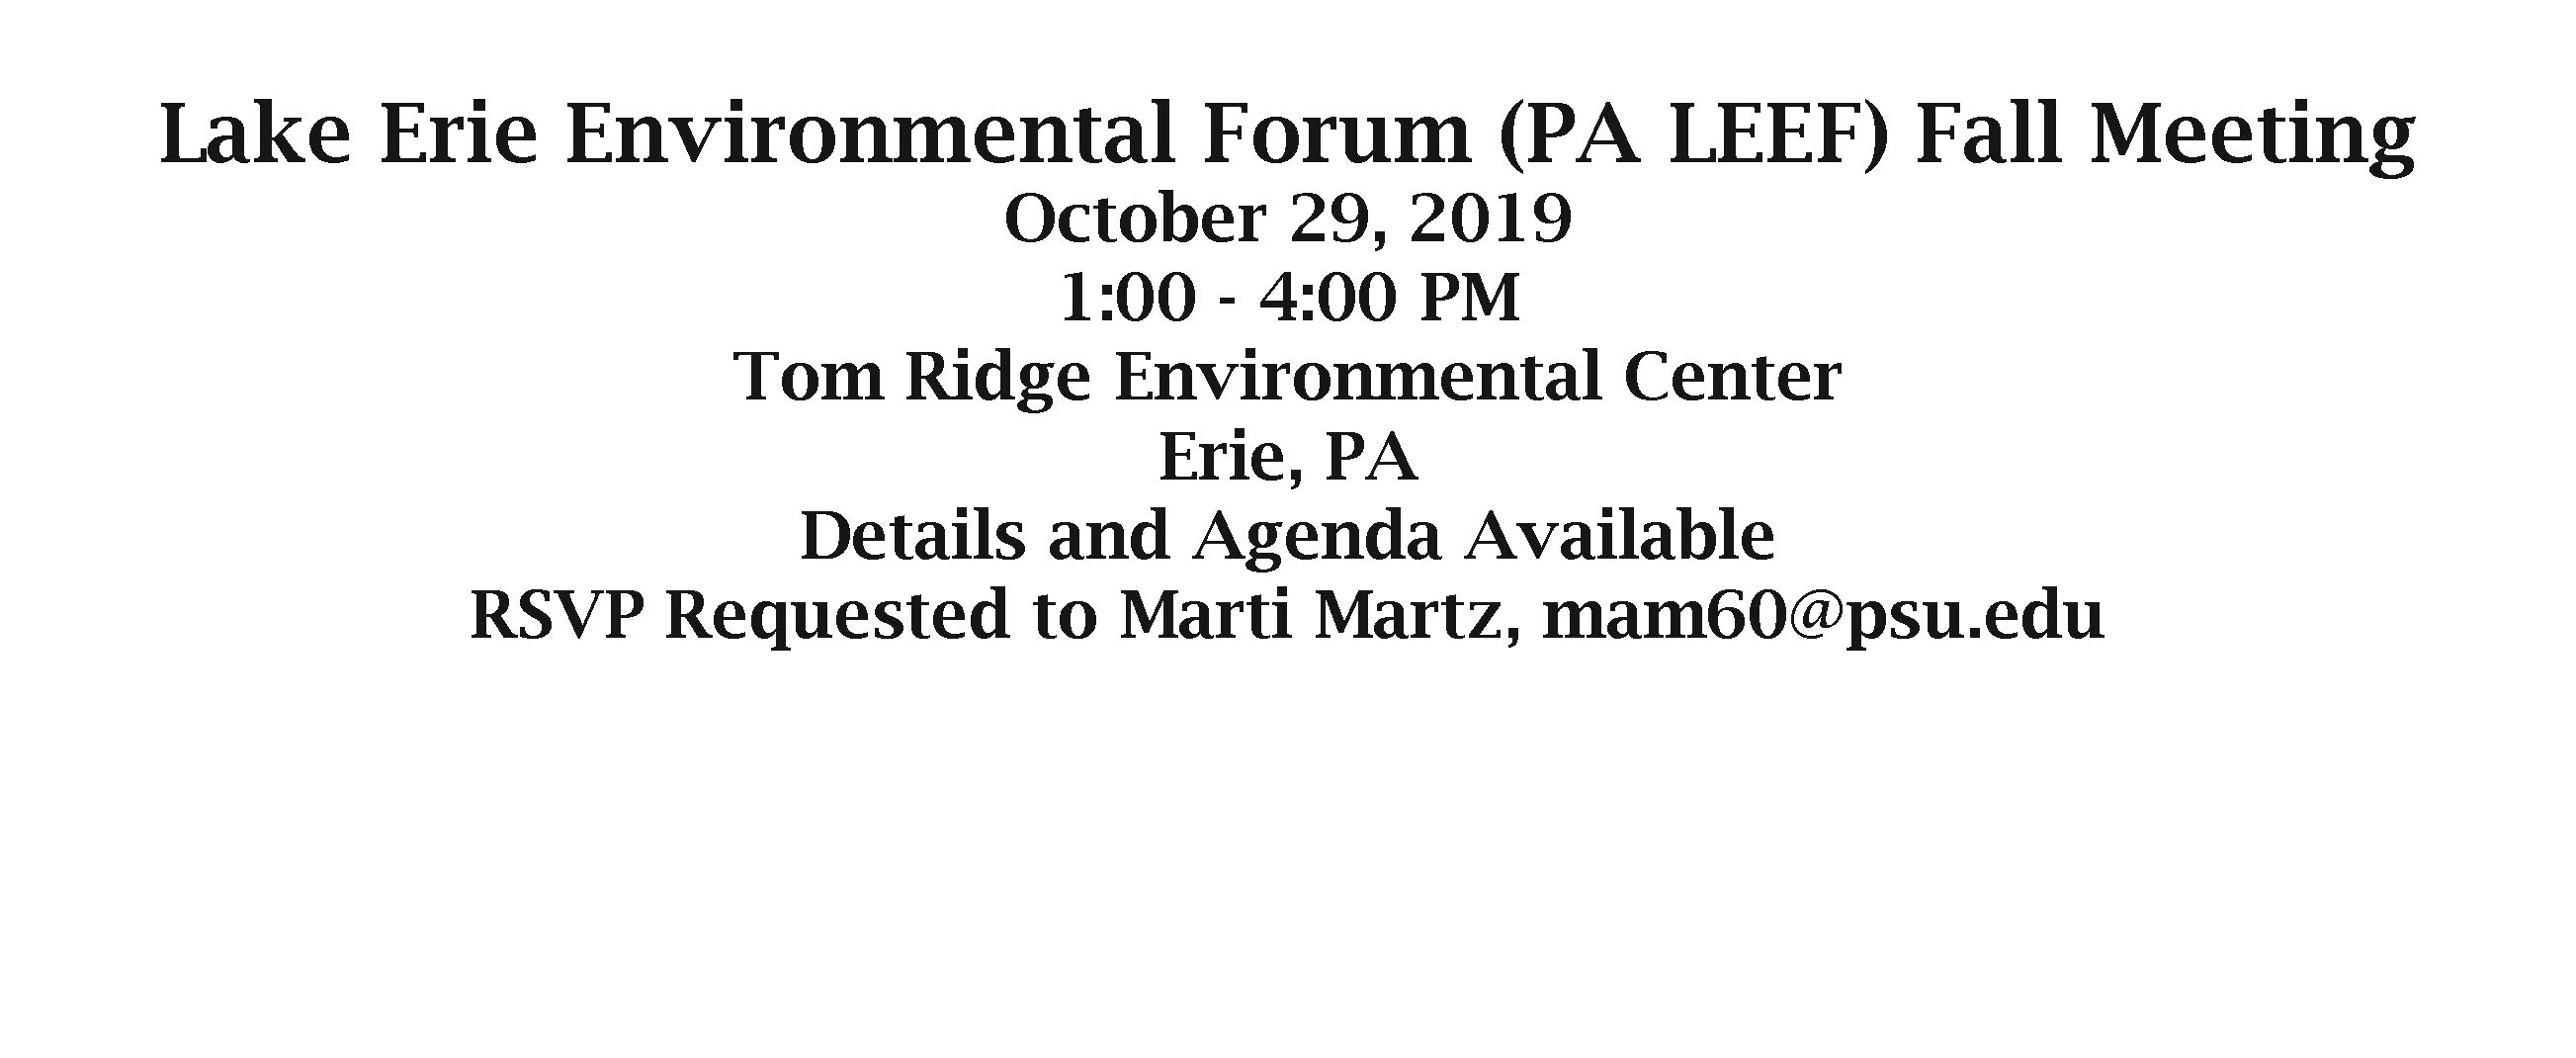 PA LEEF meeting announcement